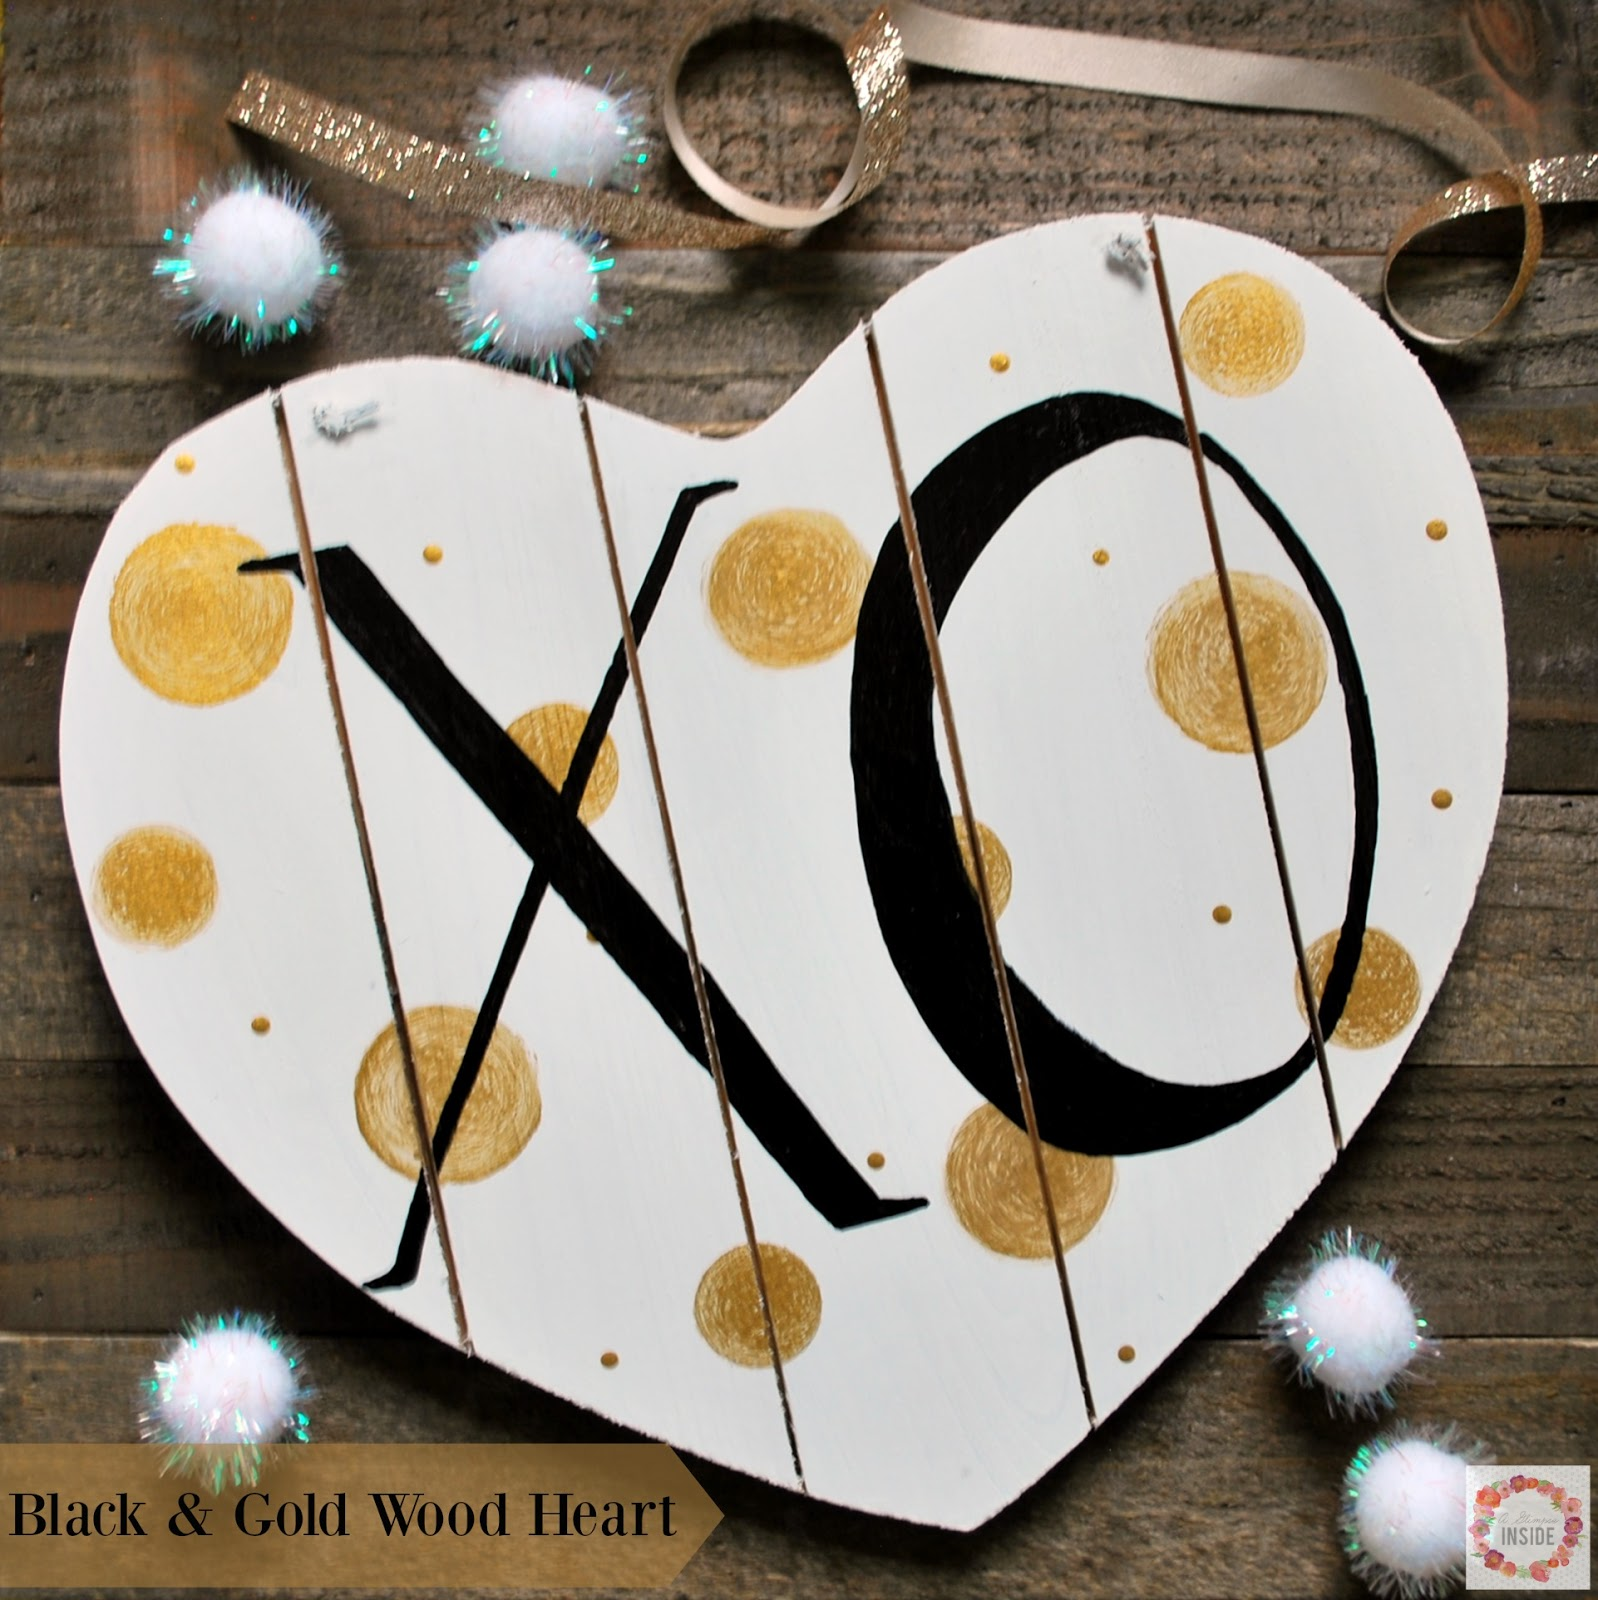 http://www.aglimpseinsideblog.com/2016/01/black-and-gold-wood-heart.html